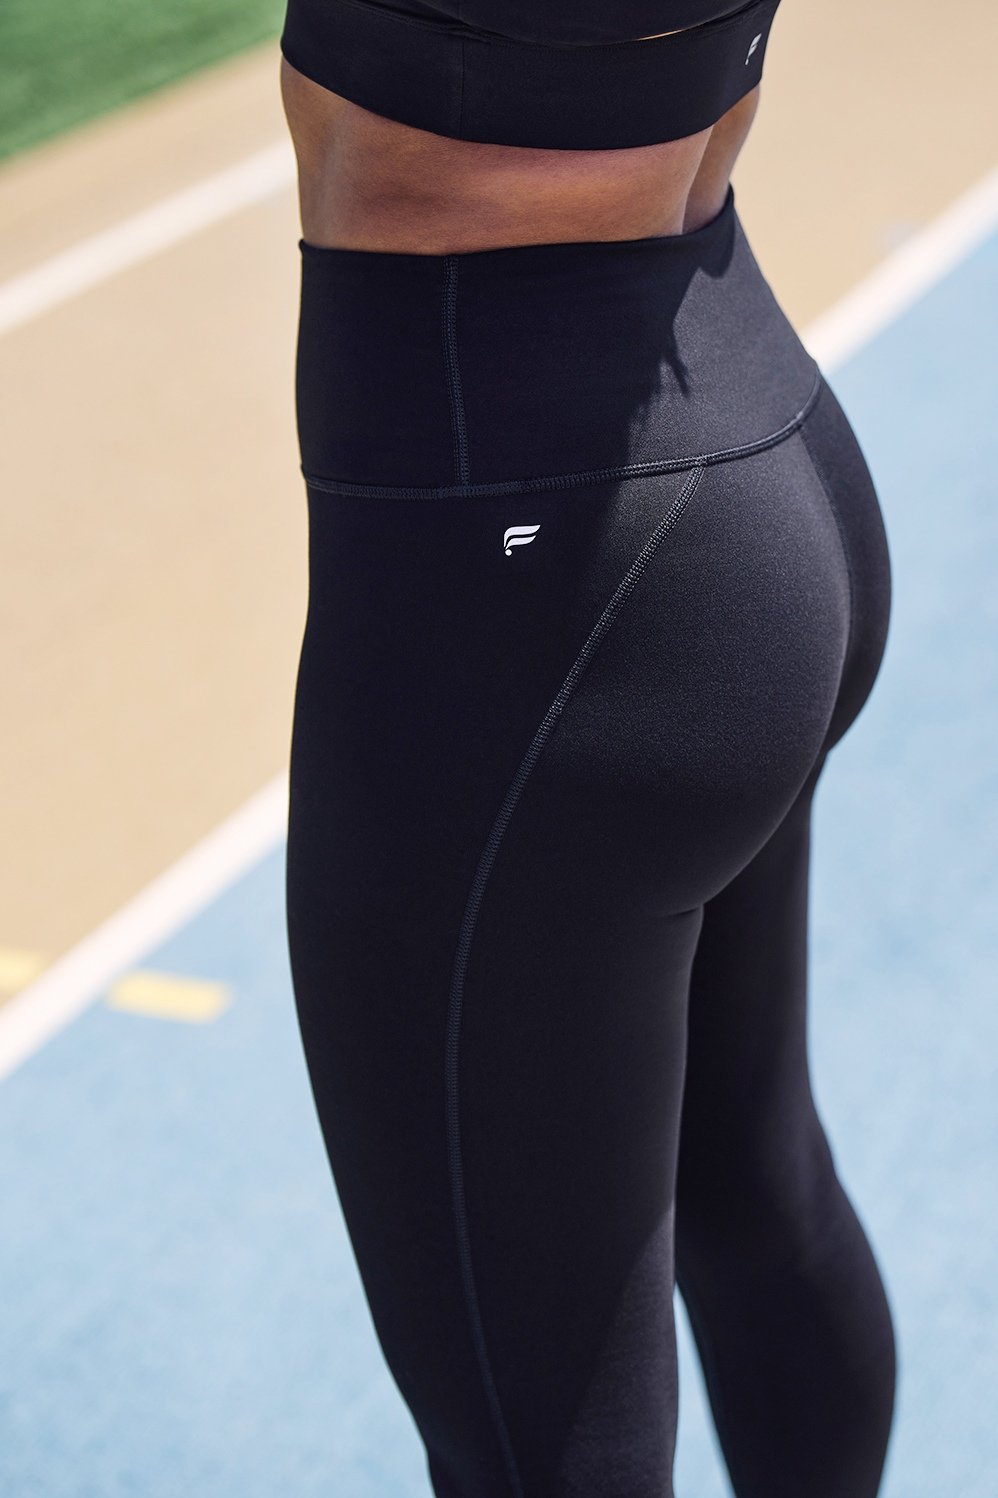 The Best High-Waisted Leggings for Every Workout By Indya Brown When I made a resolution to stay fit this year, I went on a mission to find a pair of leggings that wouldn't slip down no matter the workout.